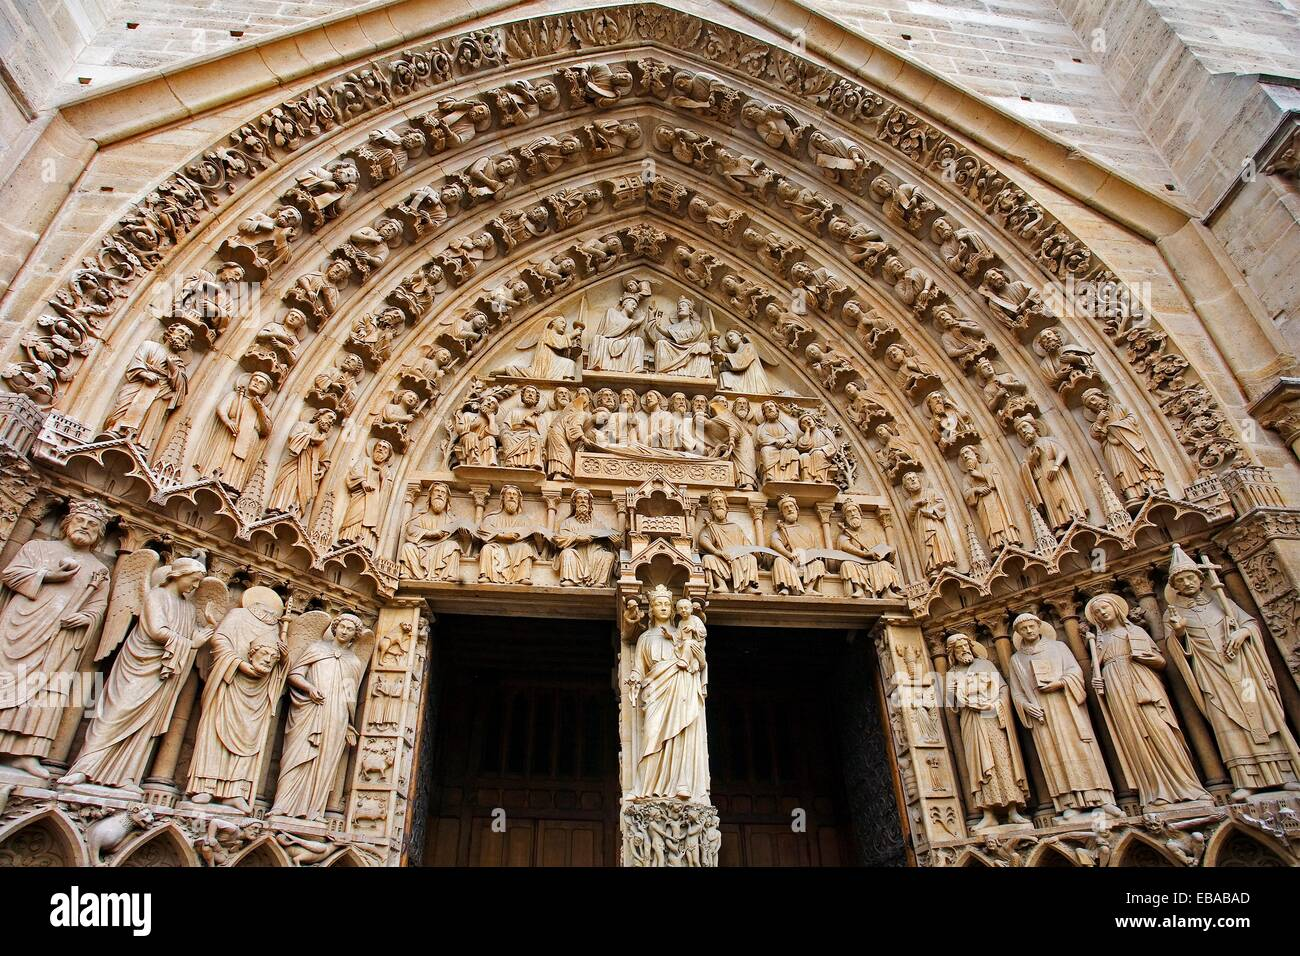 Notre Dame cathedral, faade detail  Paris France. - Stock Image